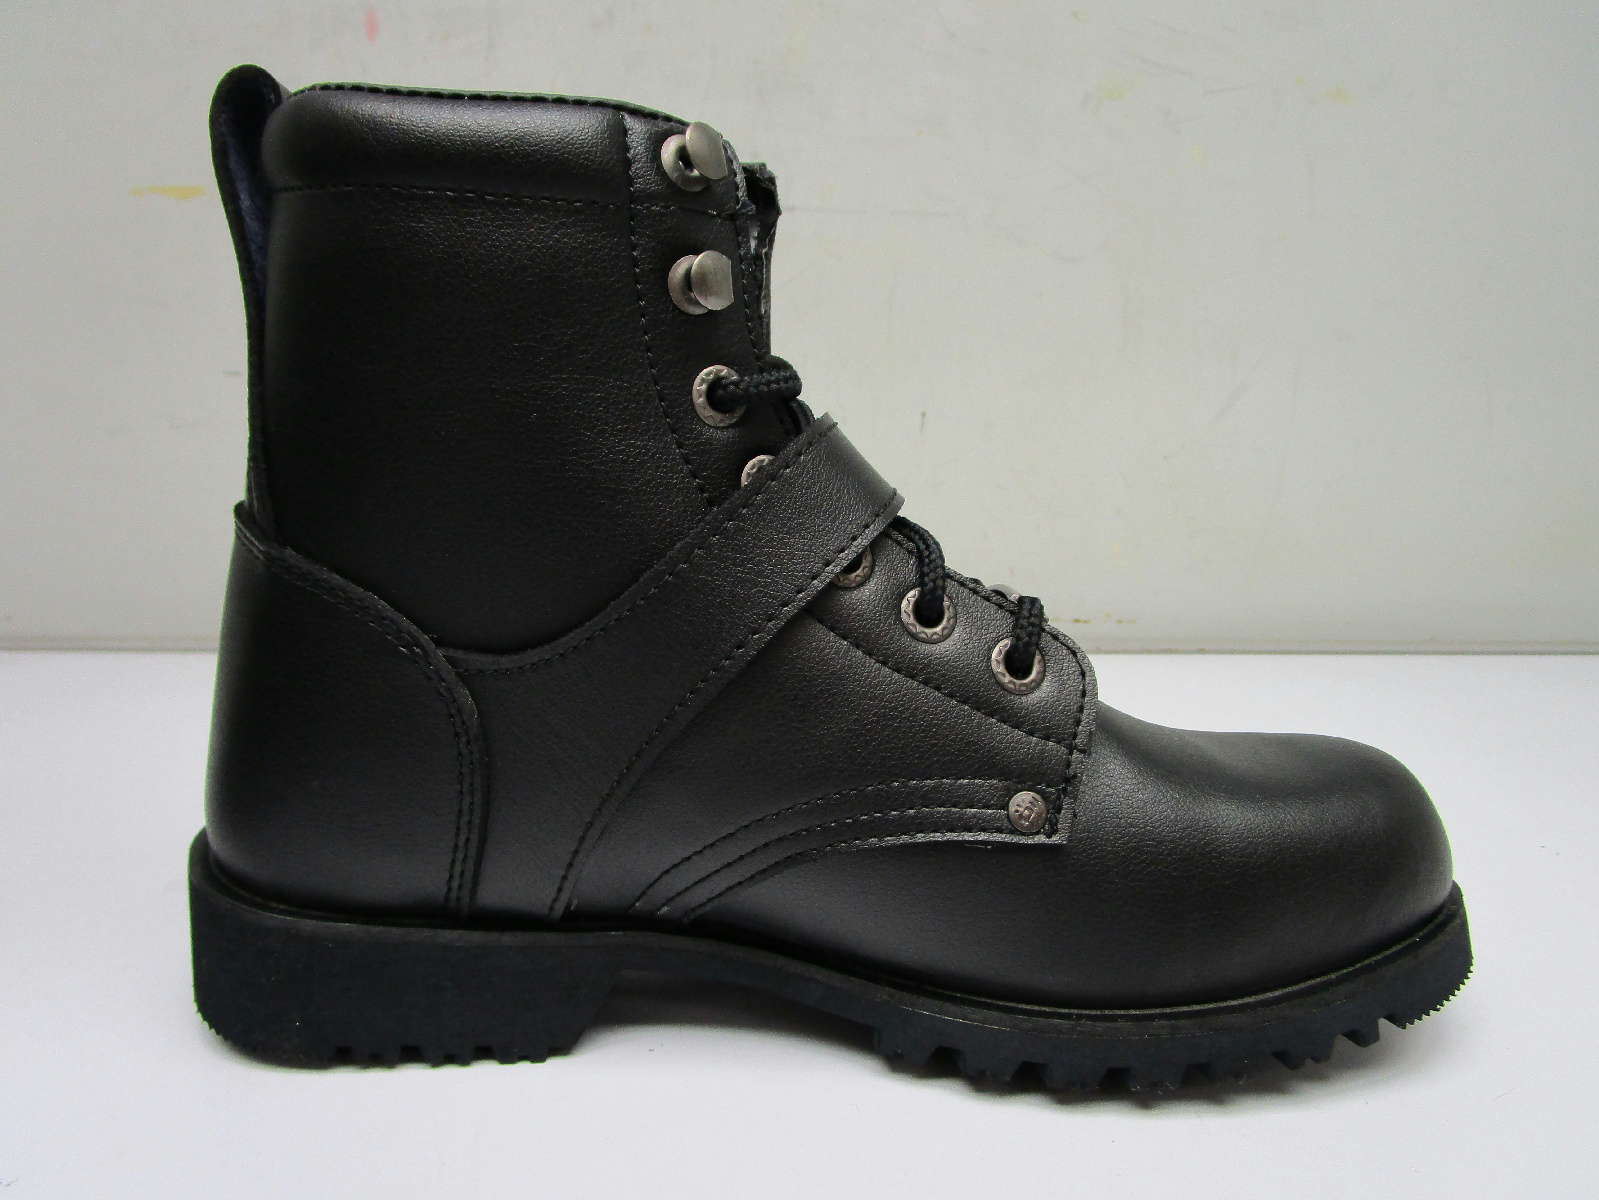 bilt highway lace up leather motorcycle boots s black